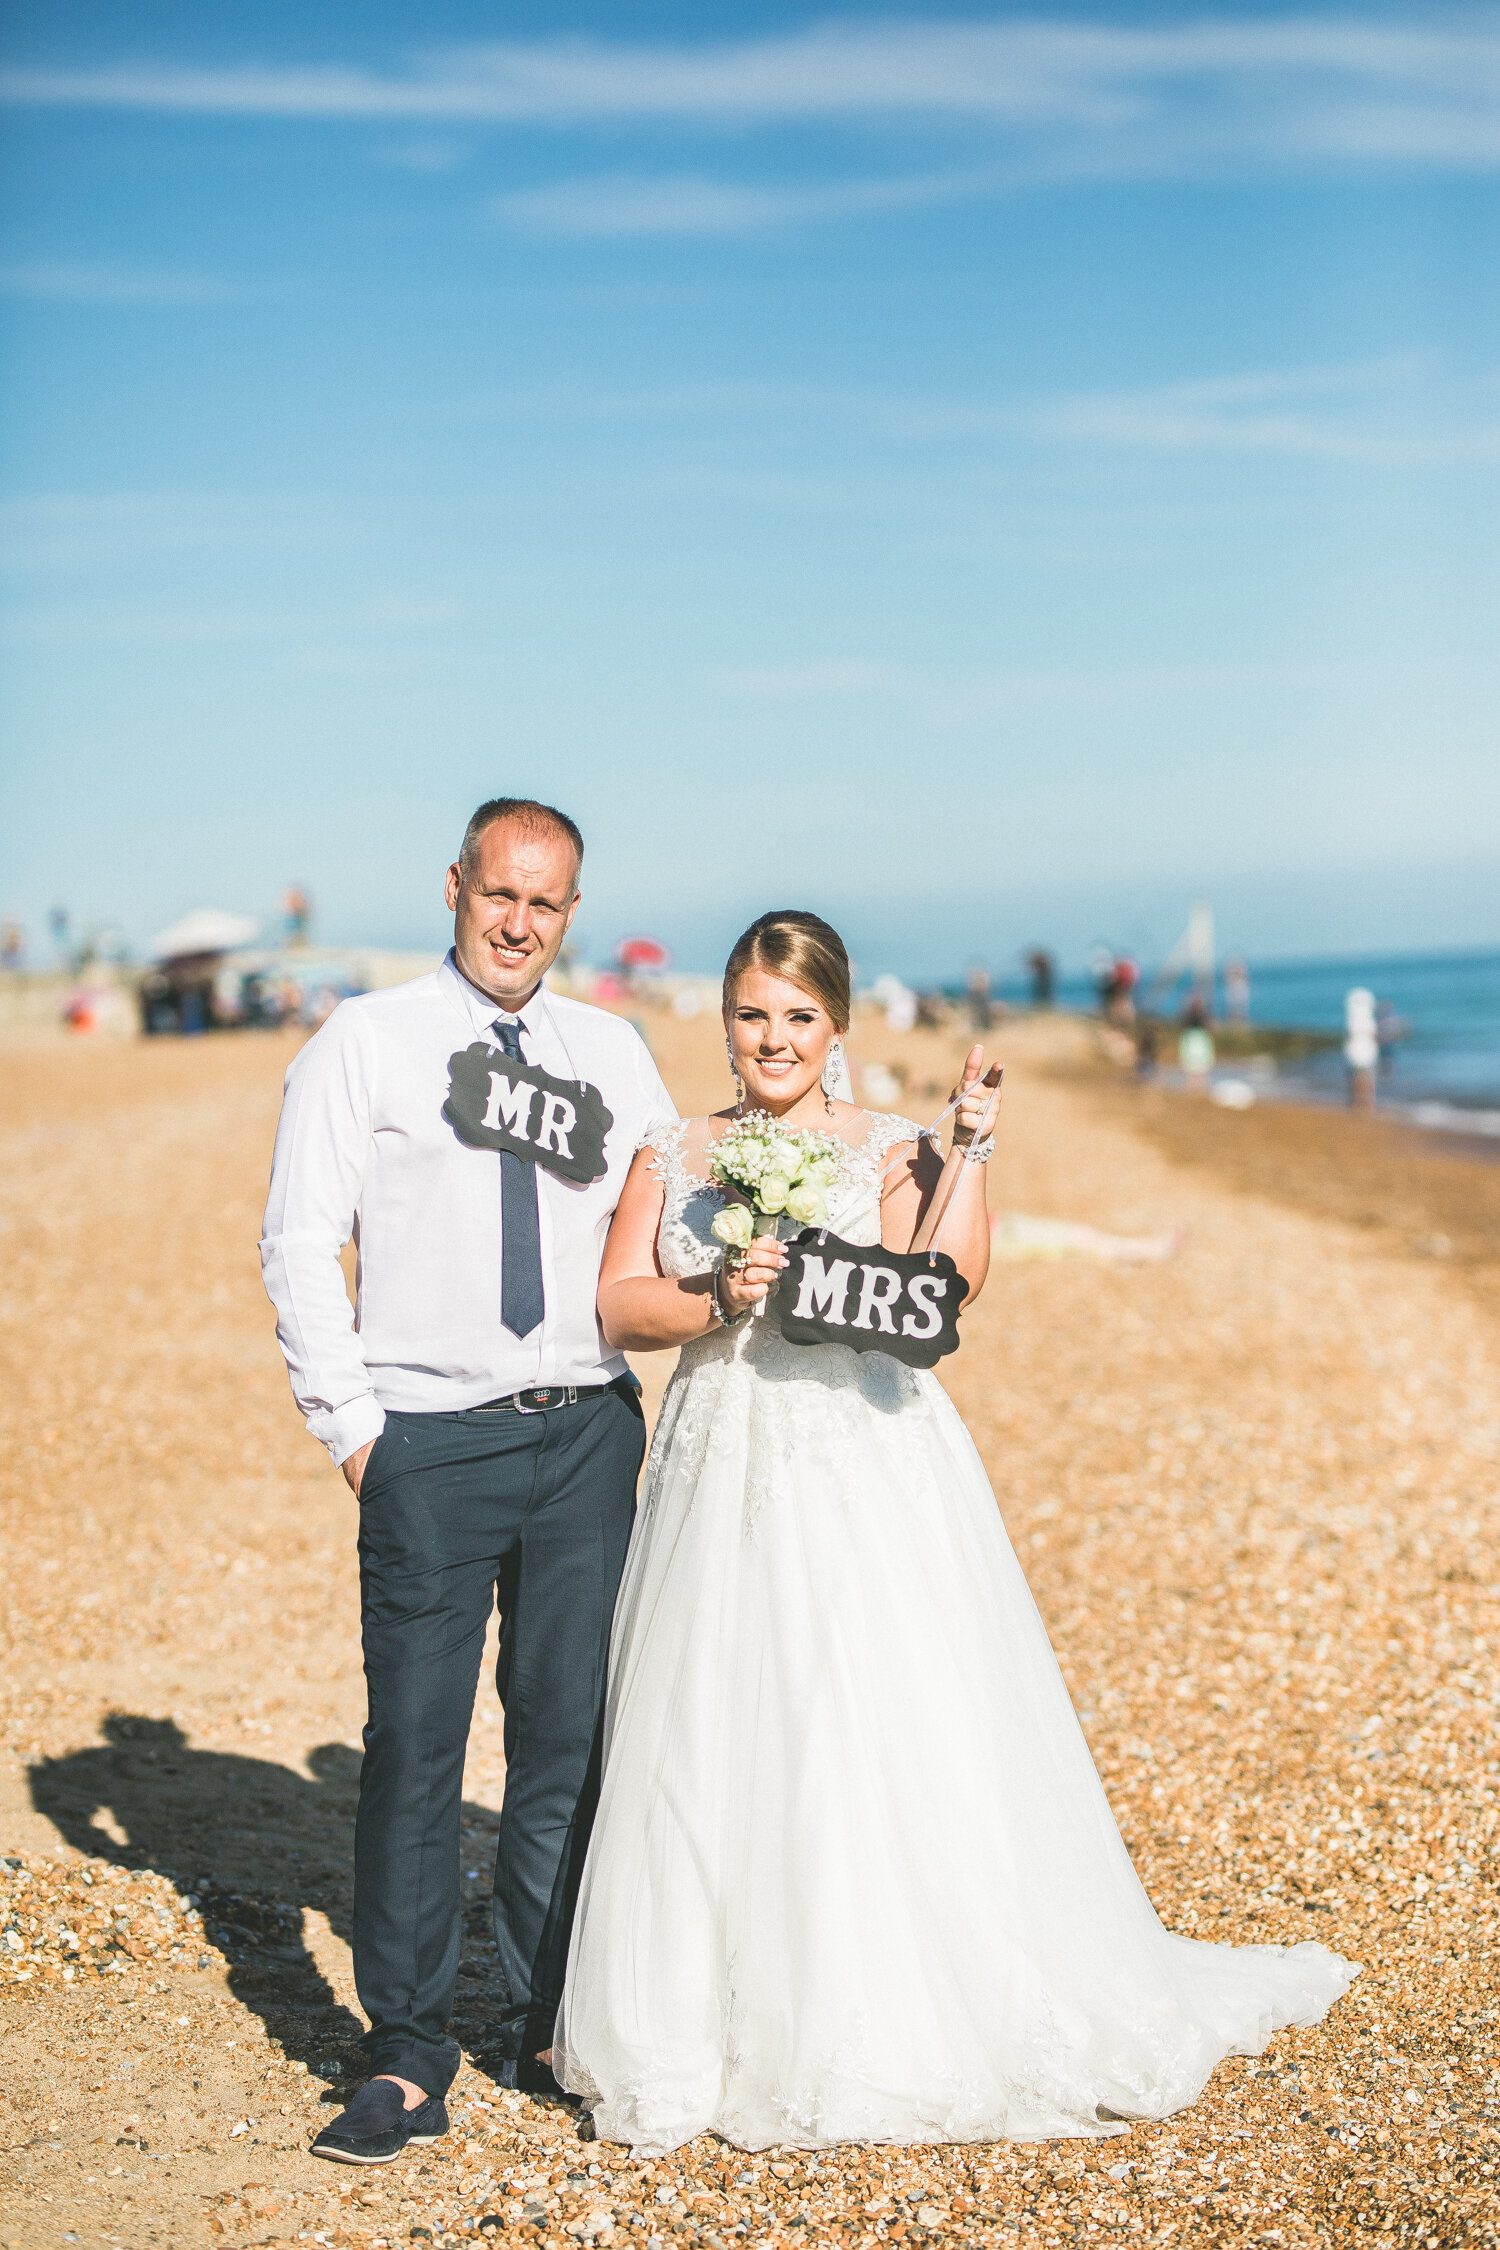 Mr and Mrs Beach Wedding Portrait Photography in Hastings East Sussex